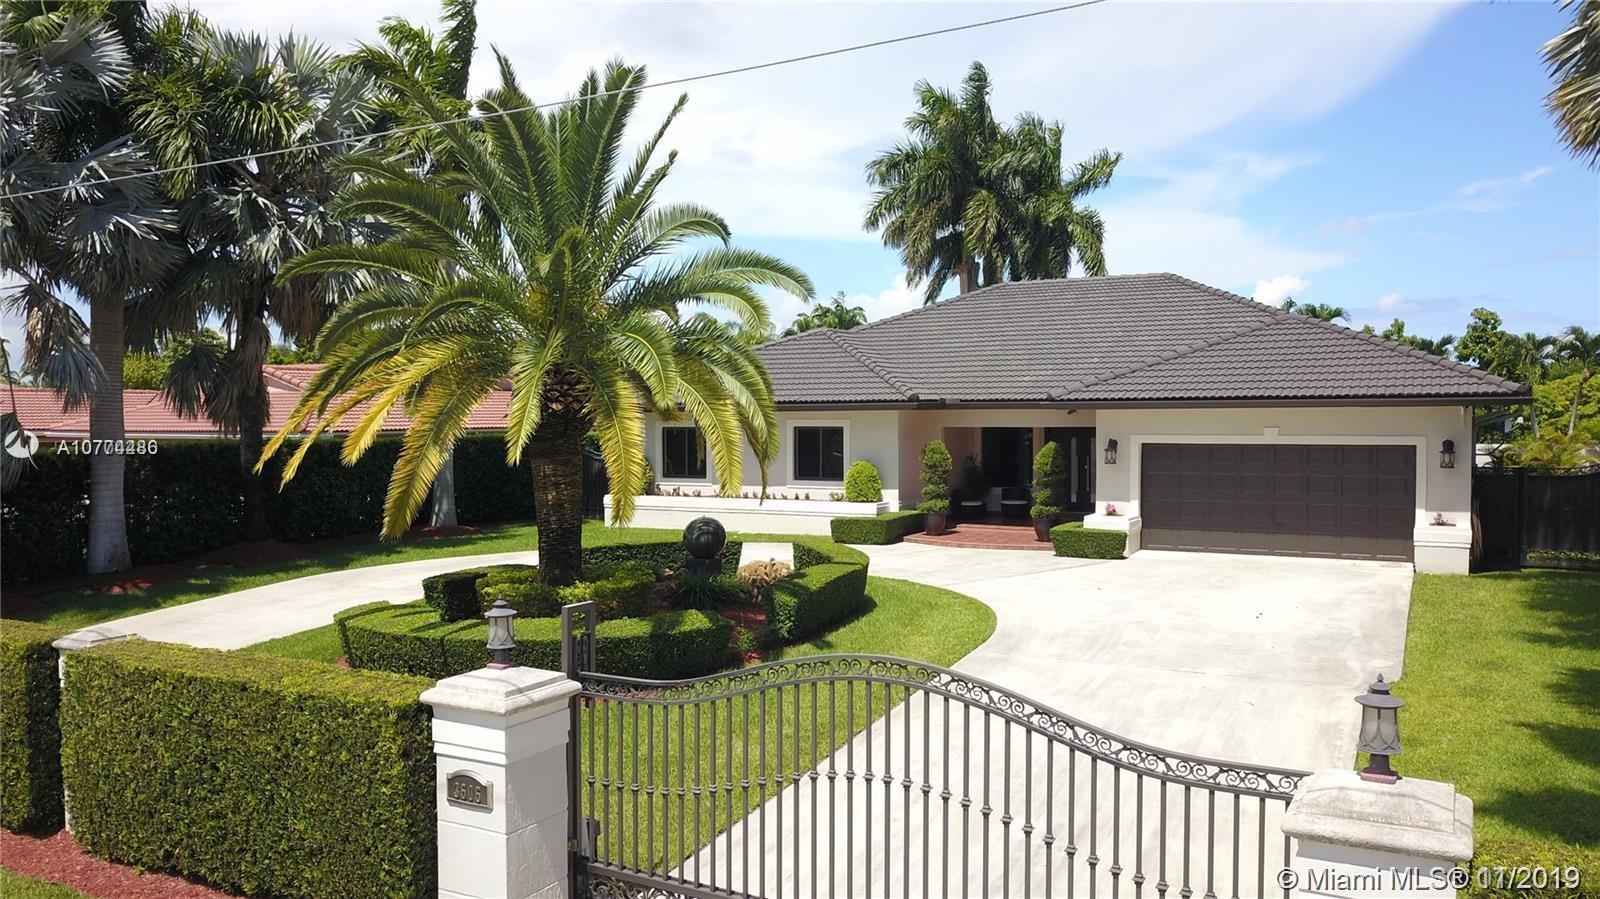 3505 SW 139th Ave, Kendall in Miami-dade County County, FL 33175 Home for Sale